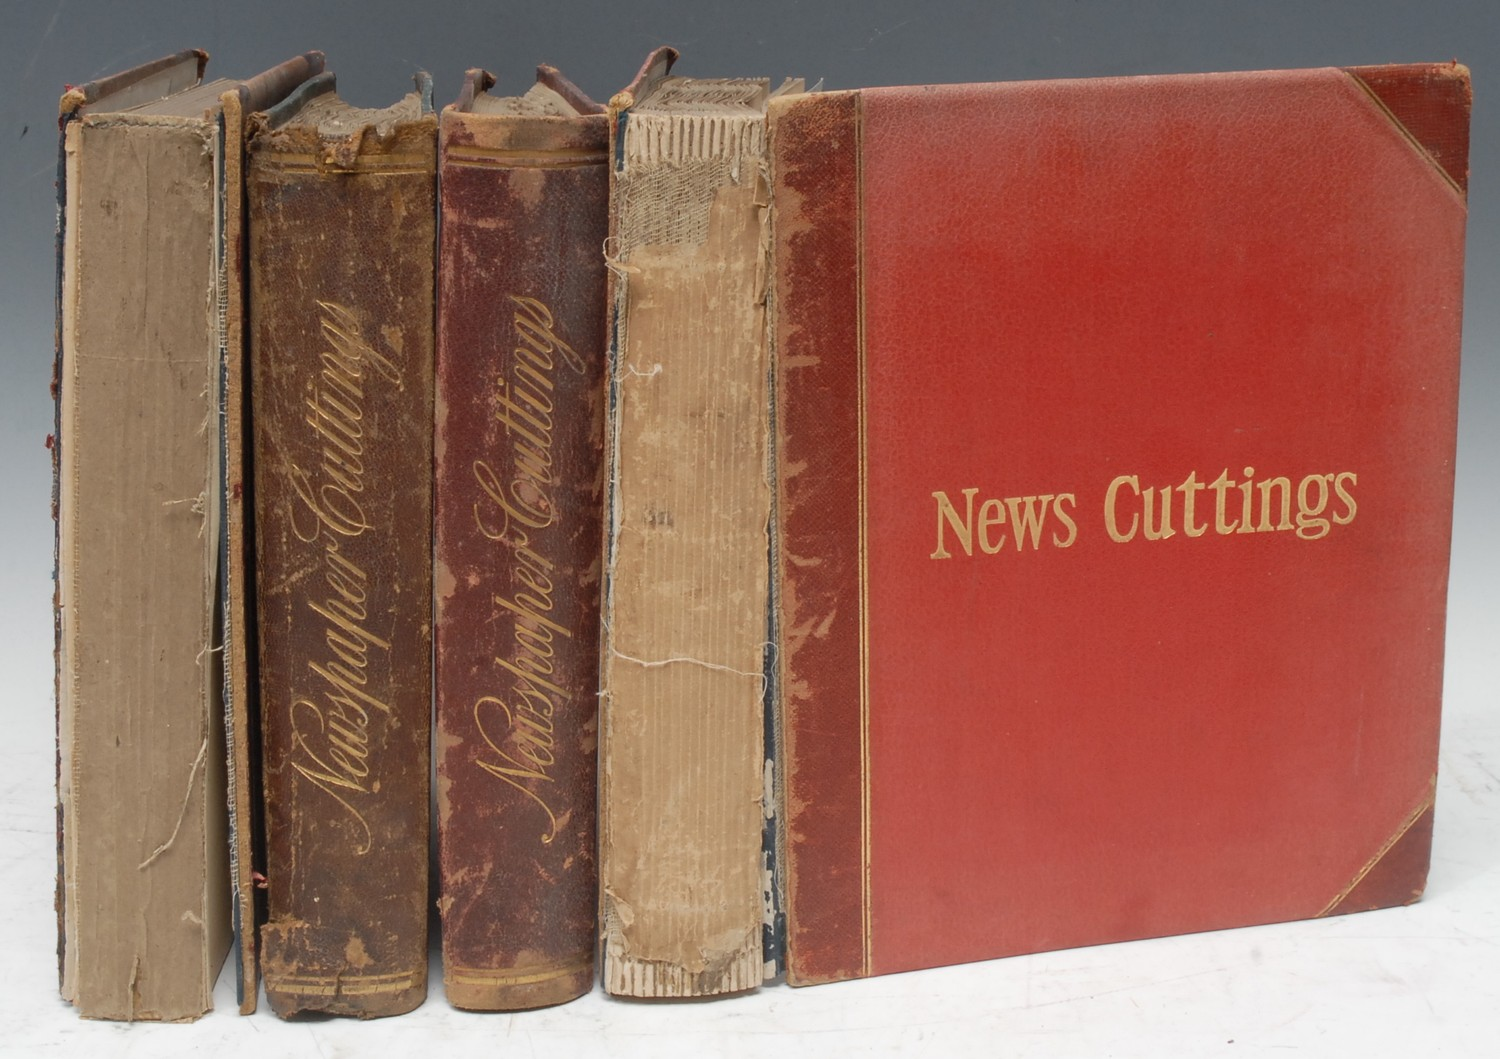 An Edwardian album of newspaper cuttings, compiled by H. Hawkins of Everdon Hall,